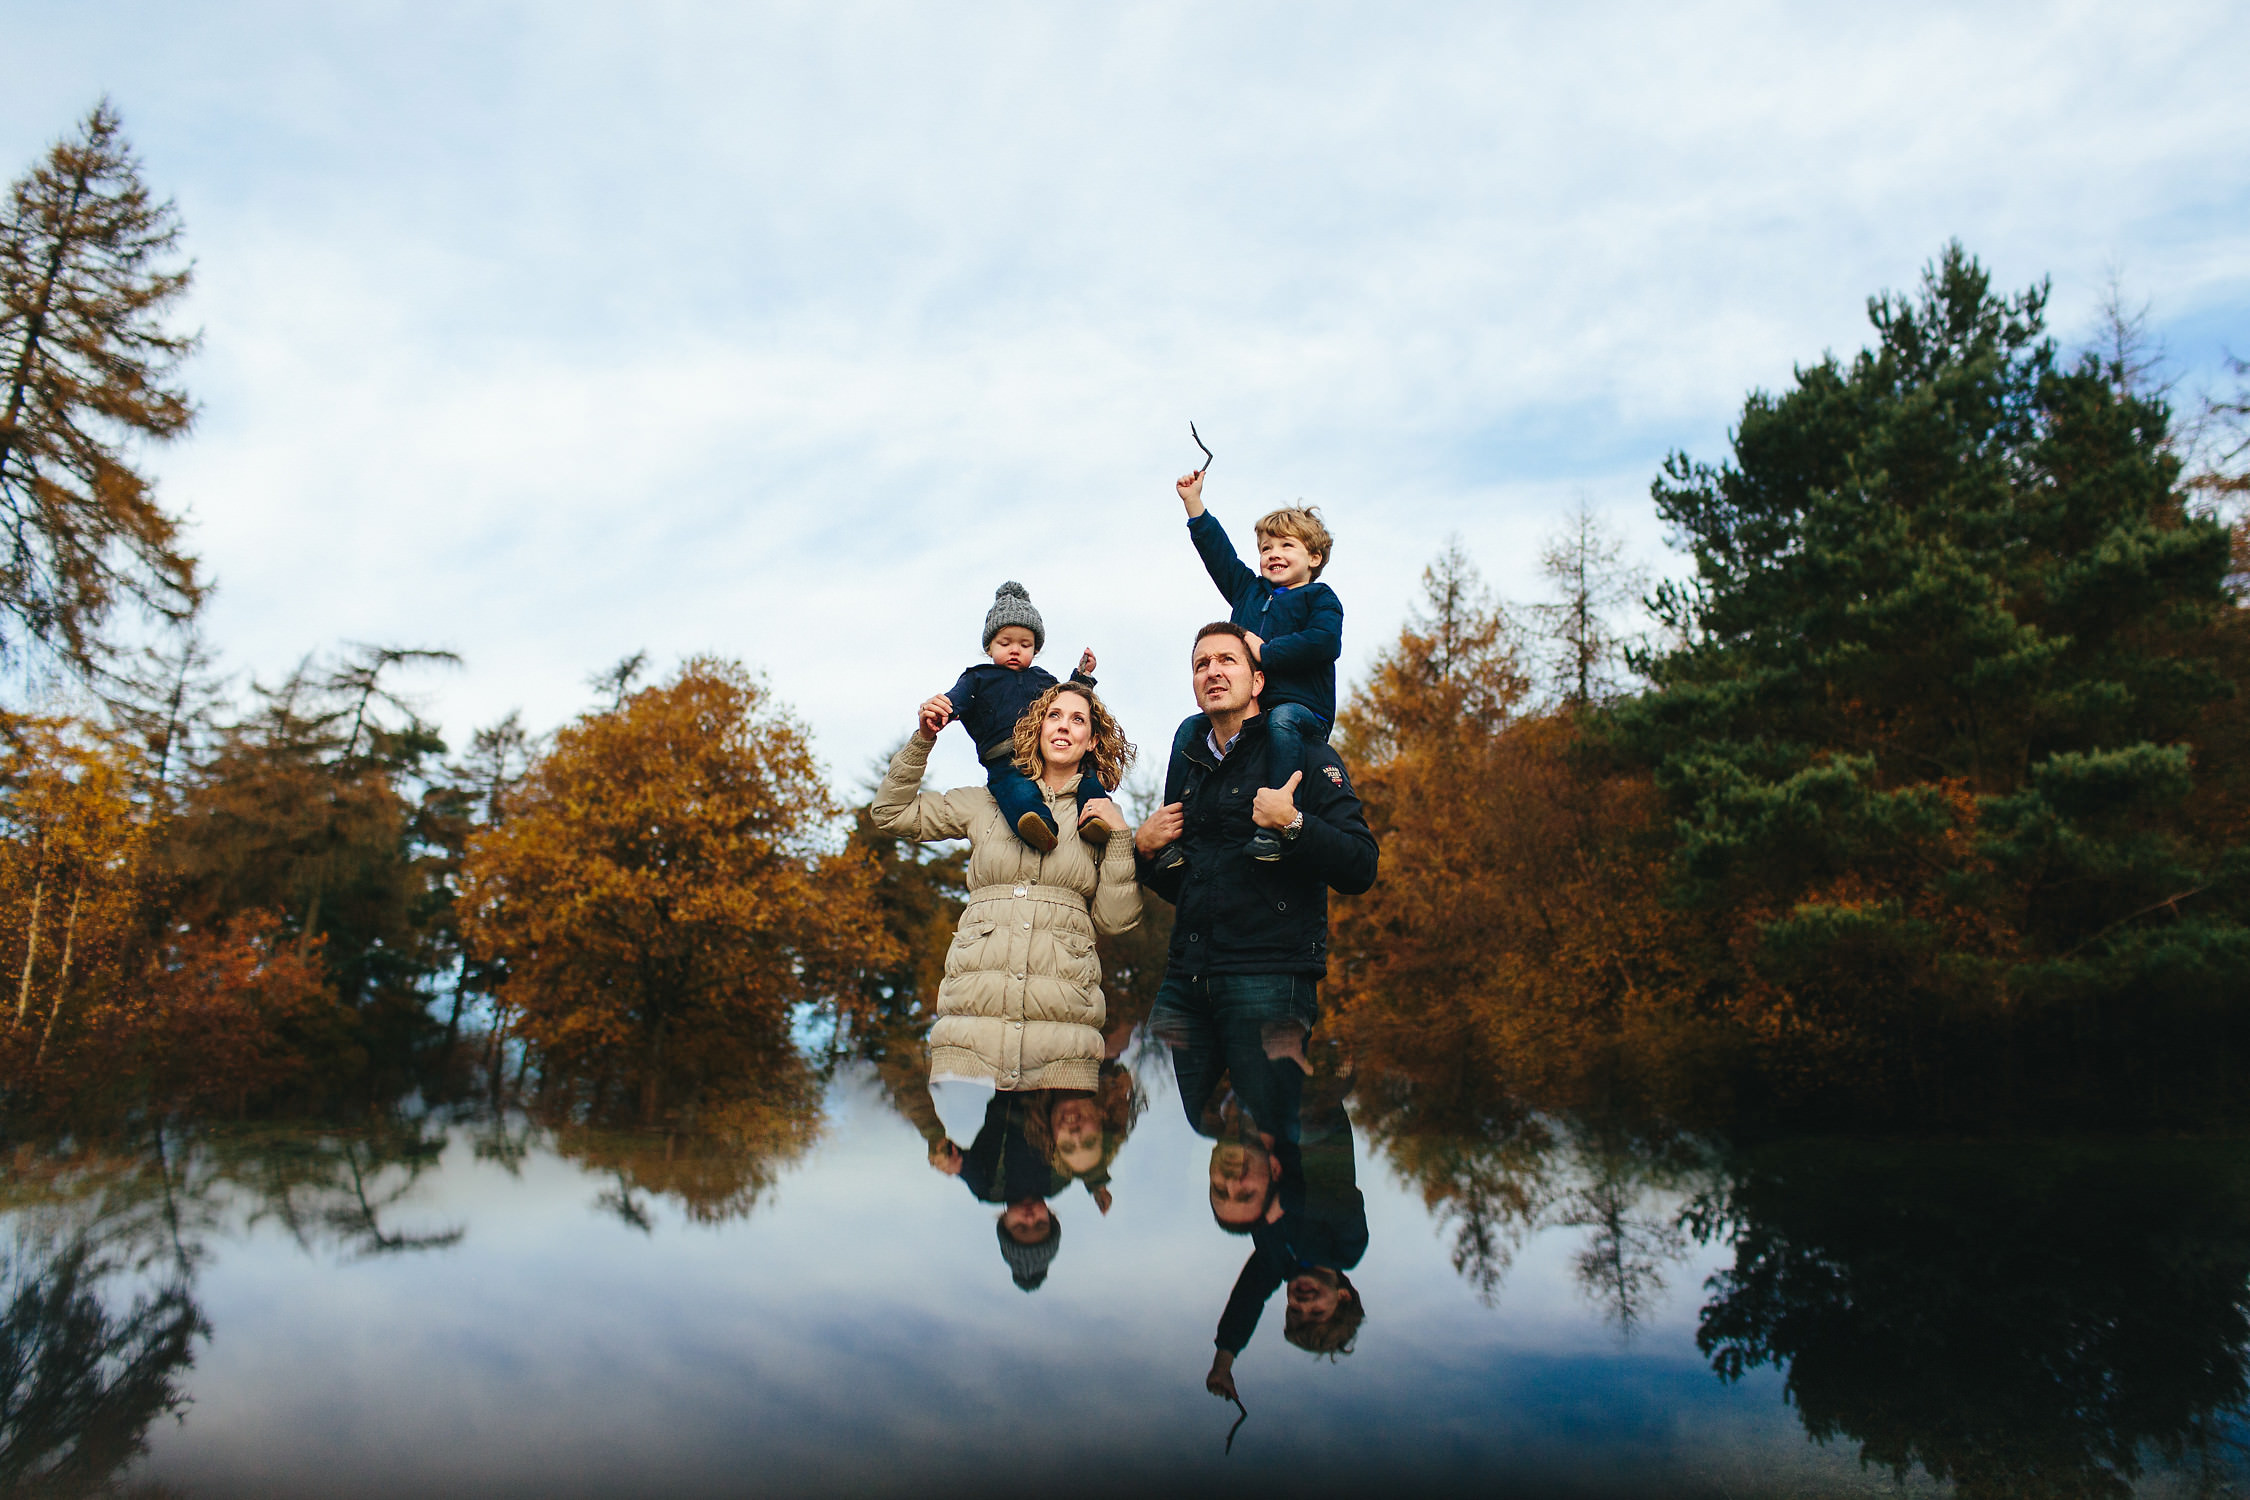 Buckinghamshire-Family-Portrait-Photography-10